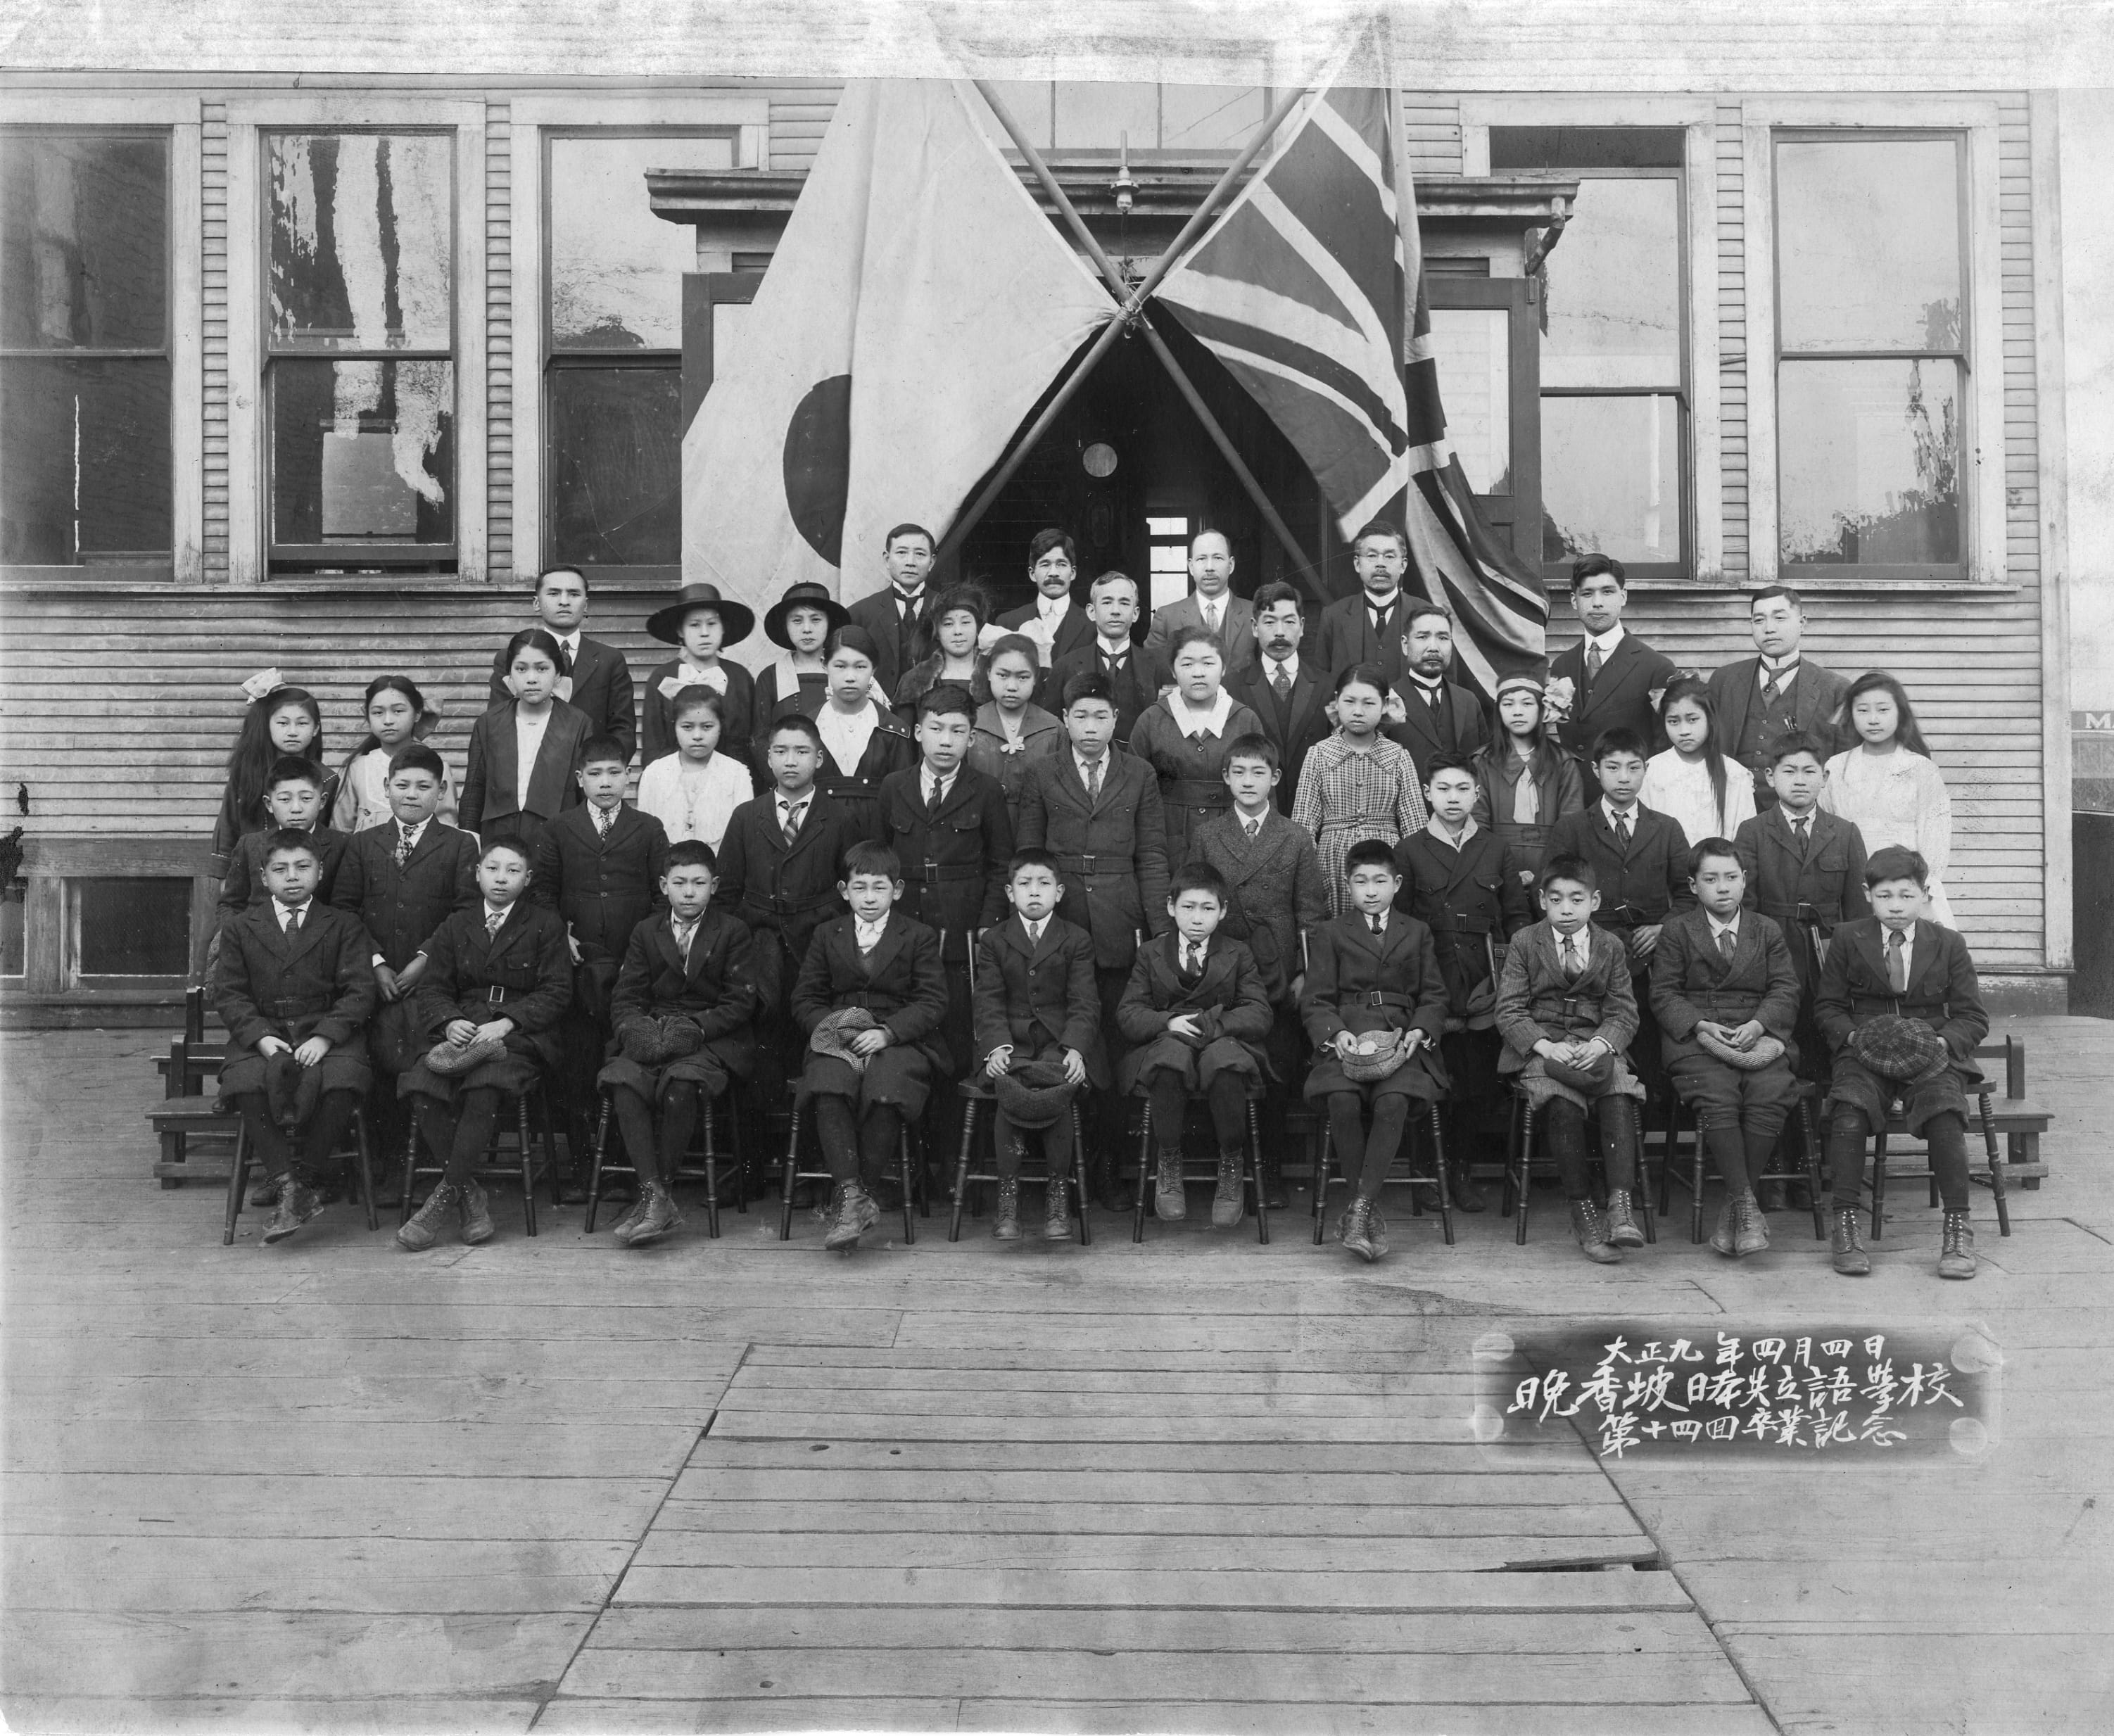 This is a group photo of the Language School's Class of 1920. The school, along with crossed Japanese and British flags, is the backdrop for the photo.